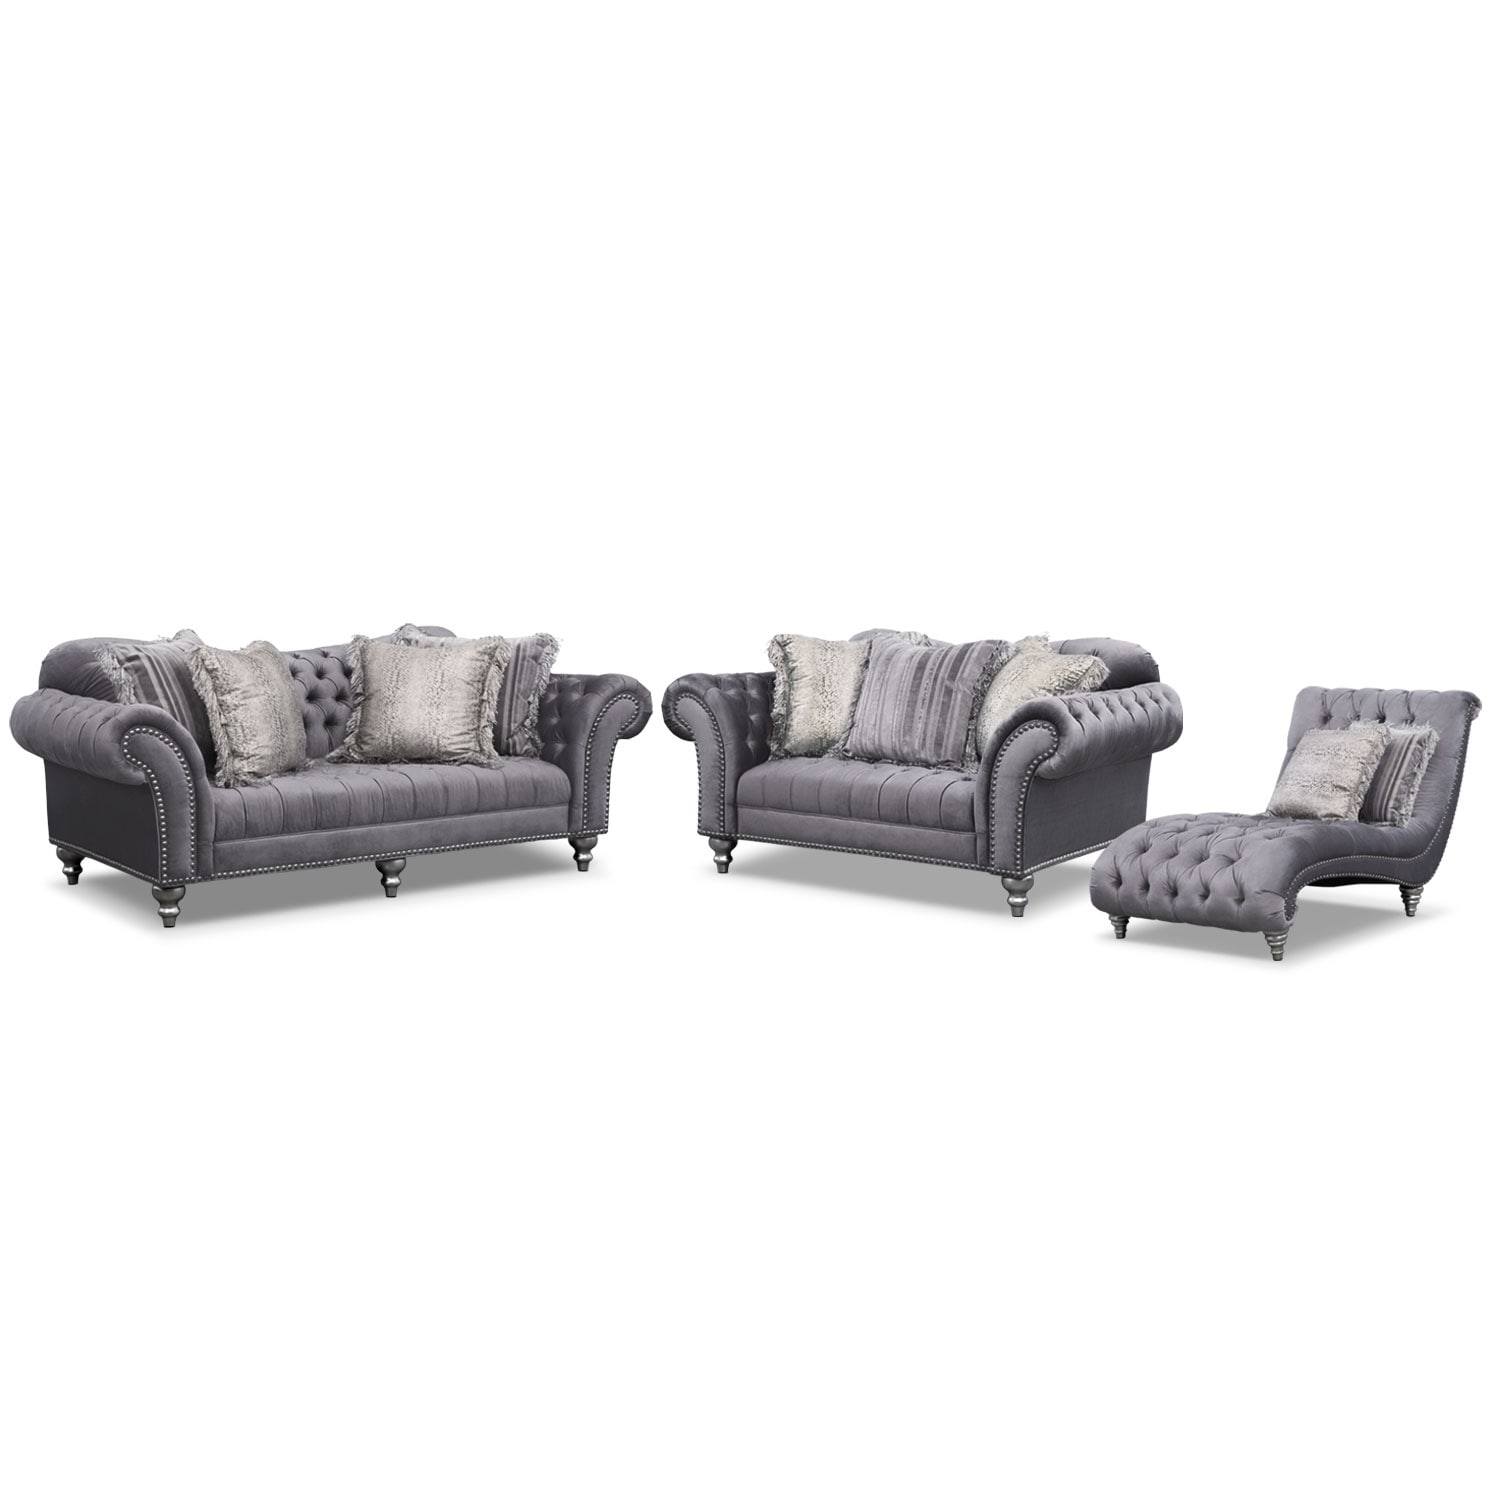 Sofa loveseat and chaise set hodan sofa chaise ashley for Ashley chaise lounge recliner